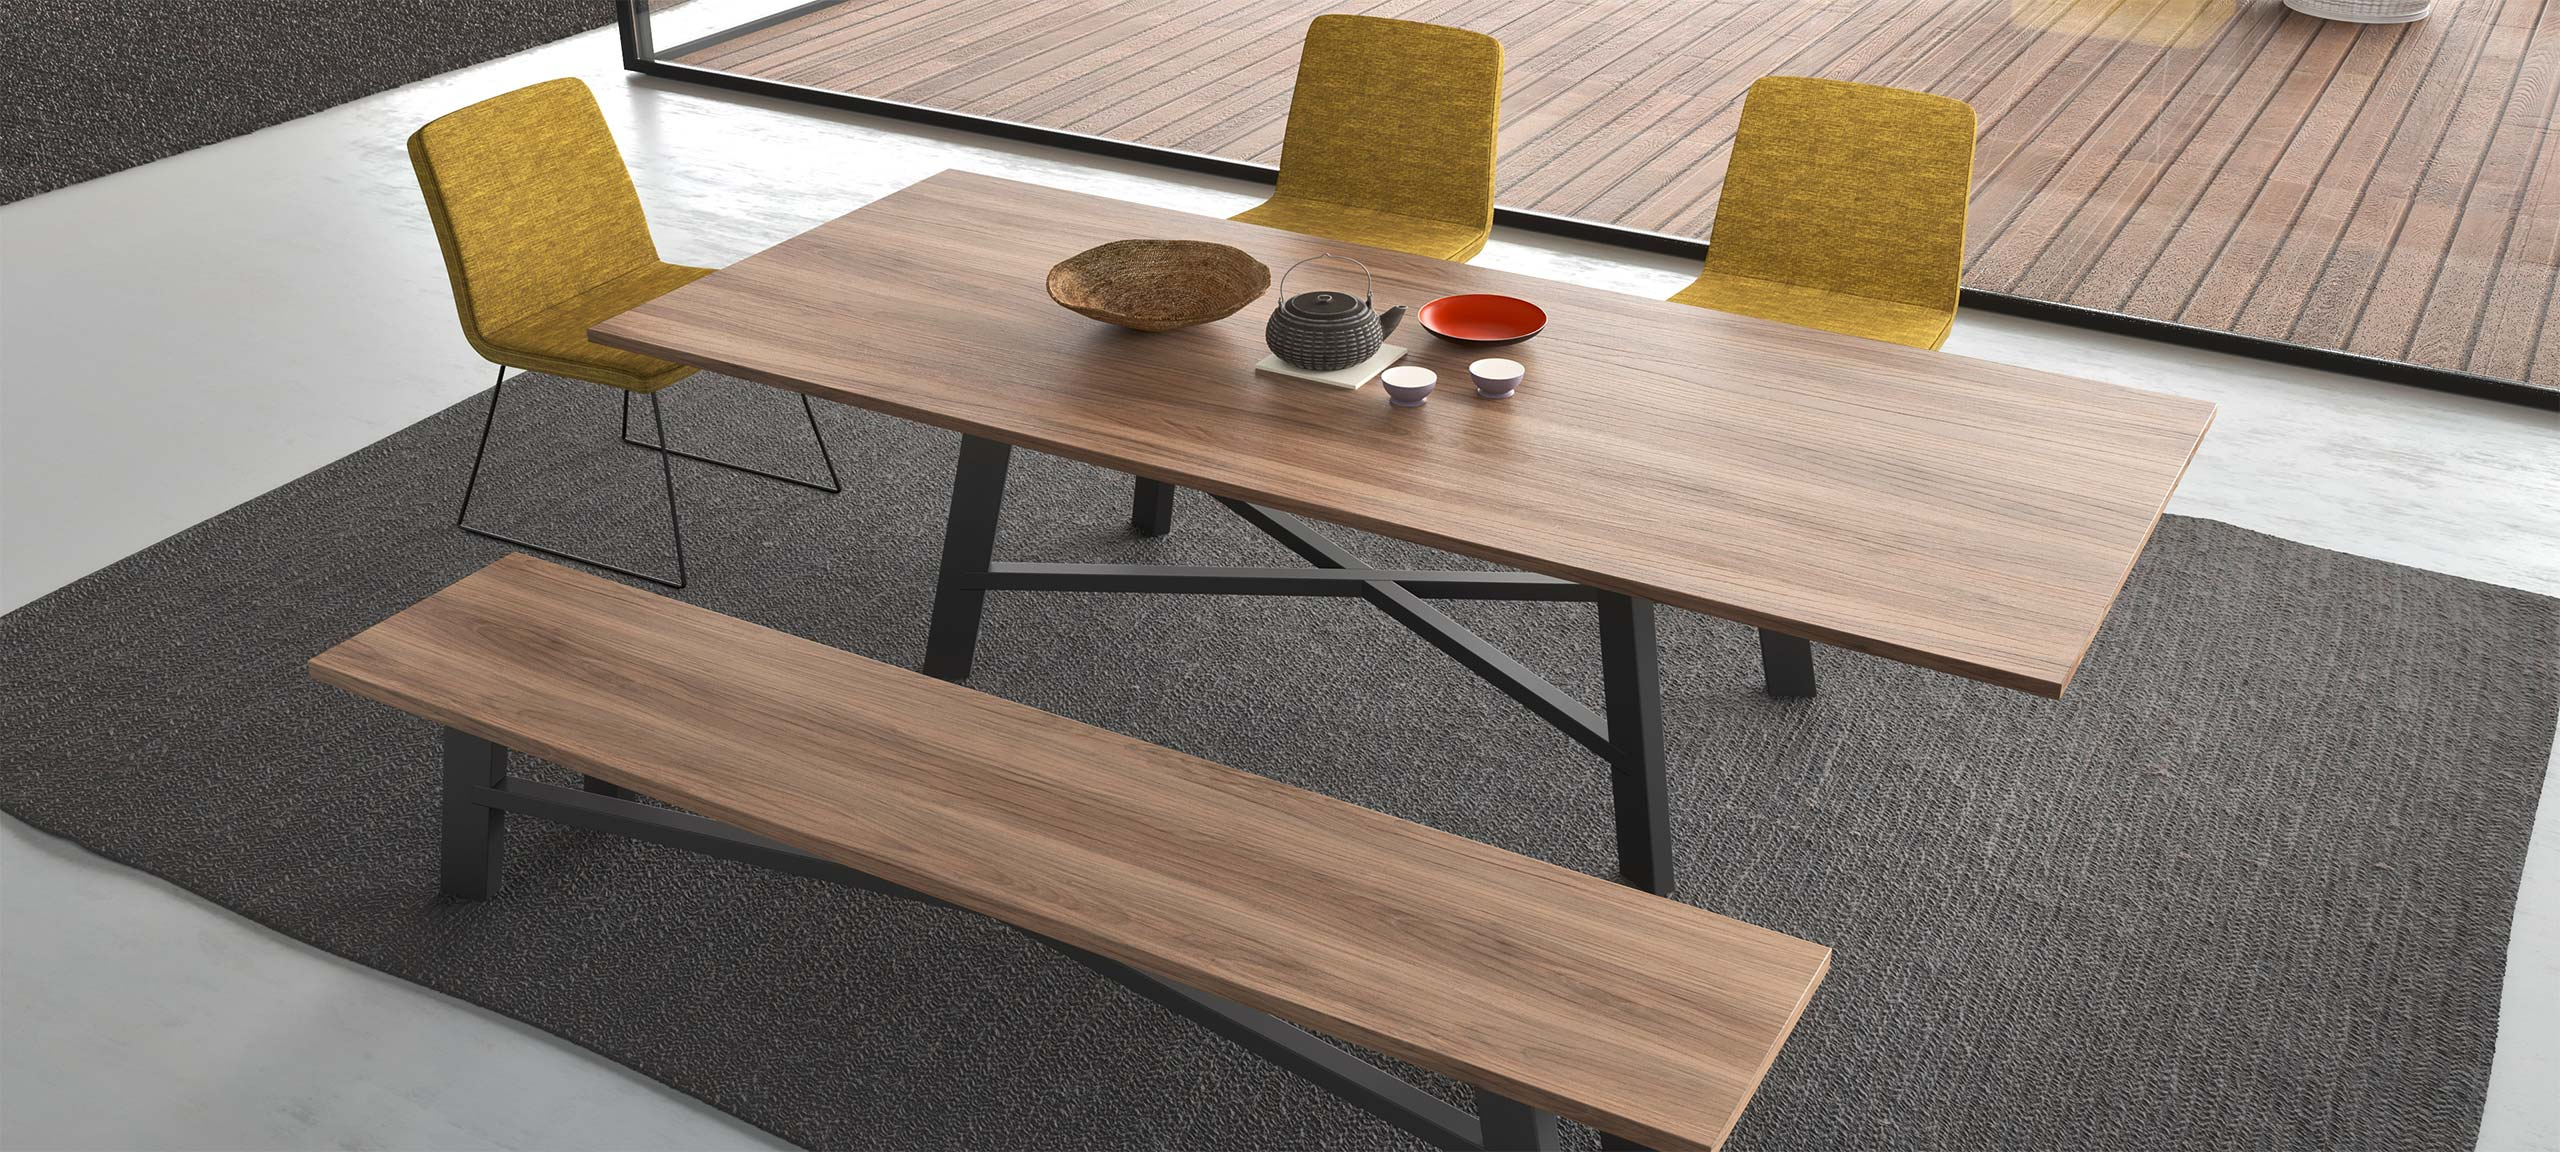 designer dining table benches chairs 1